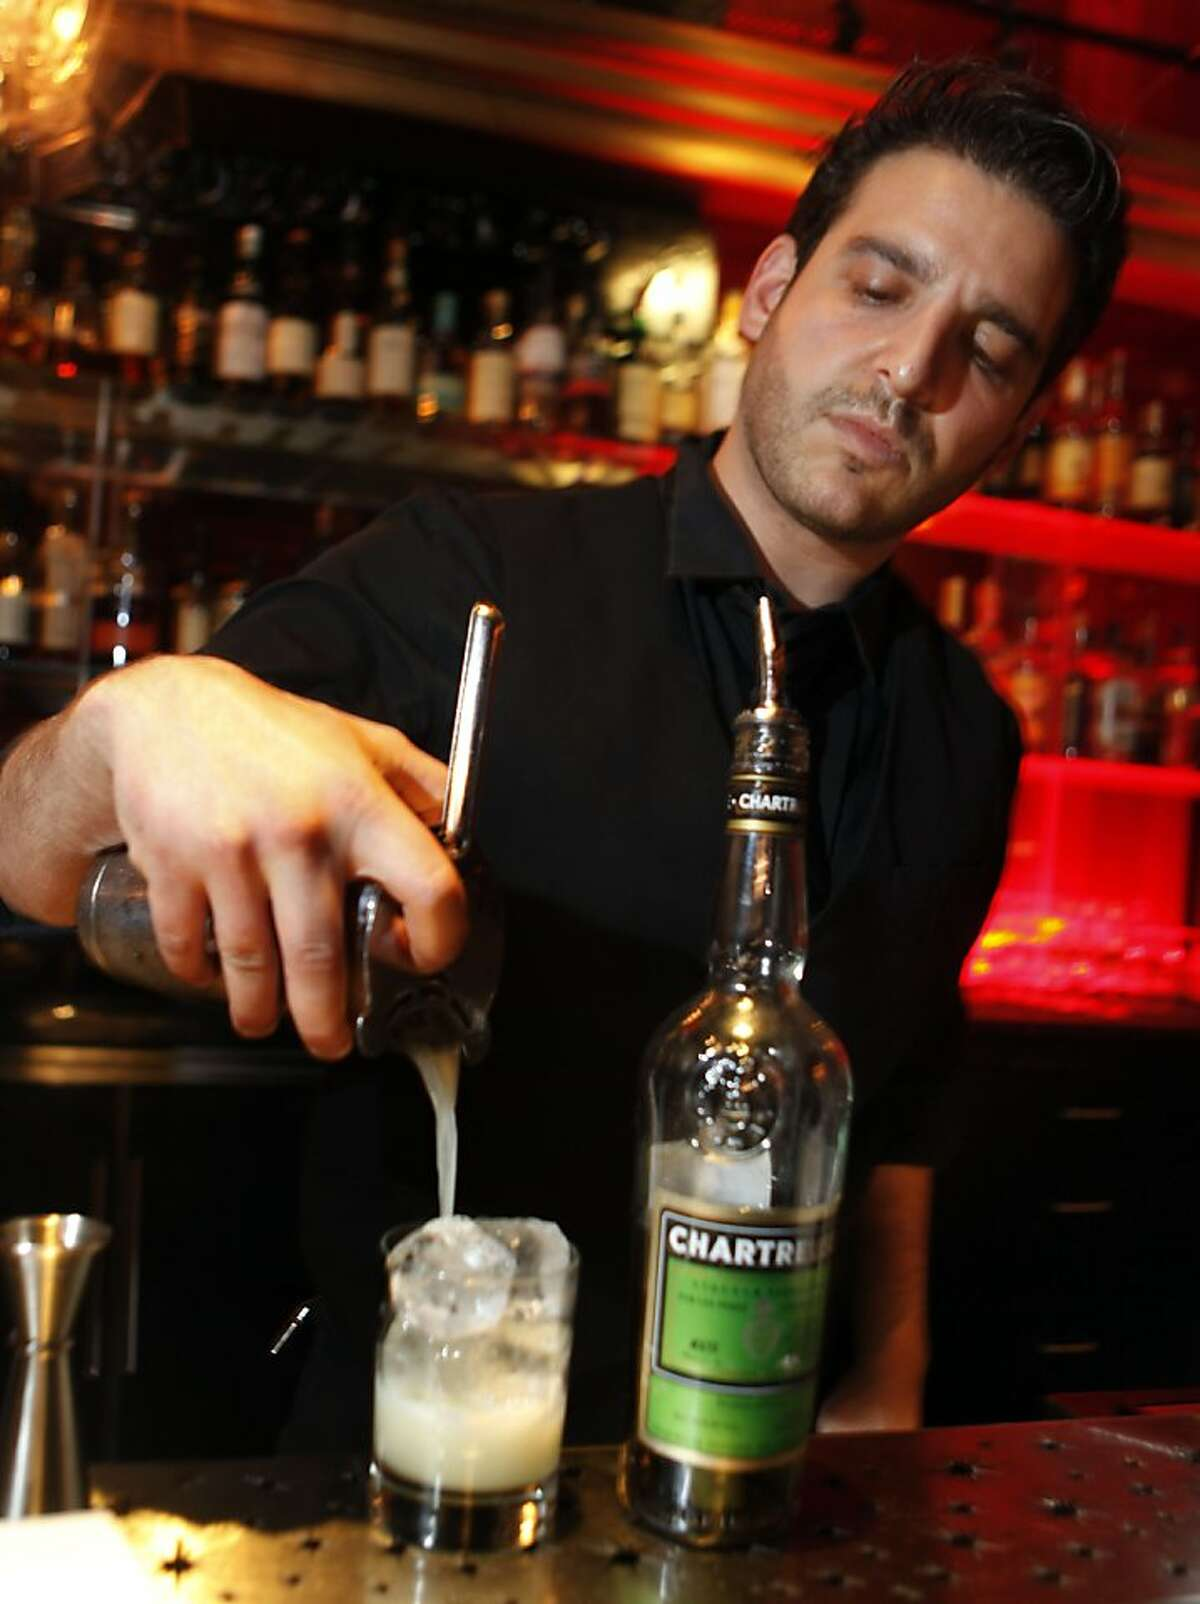 Bartender Joel Teitelbaum at Harry Denton's San Francisco Starlight Room pours his Jalapeno-infused Chartreuse. Wednesday November 16, 2011